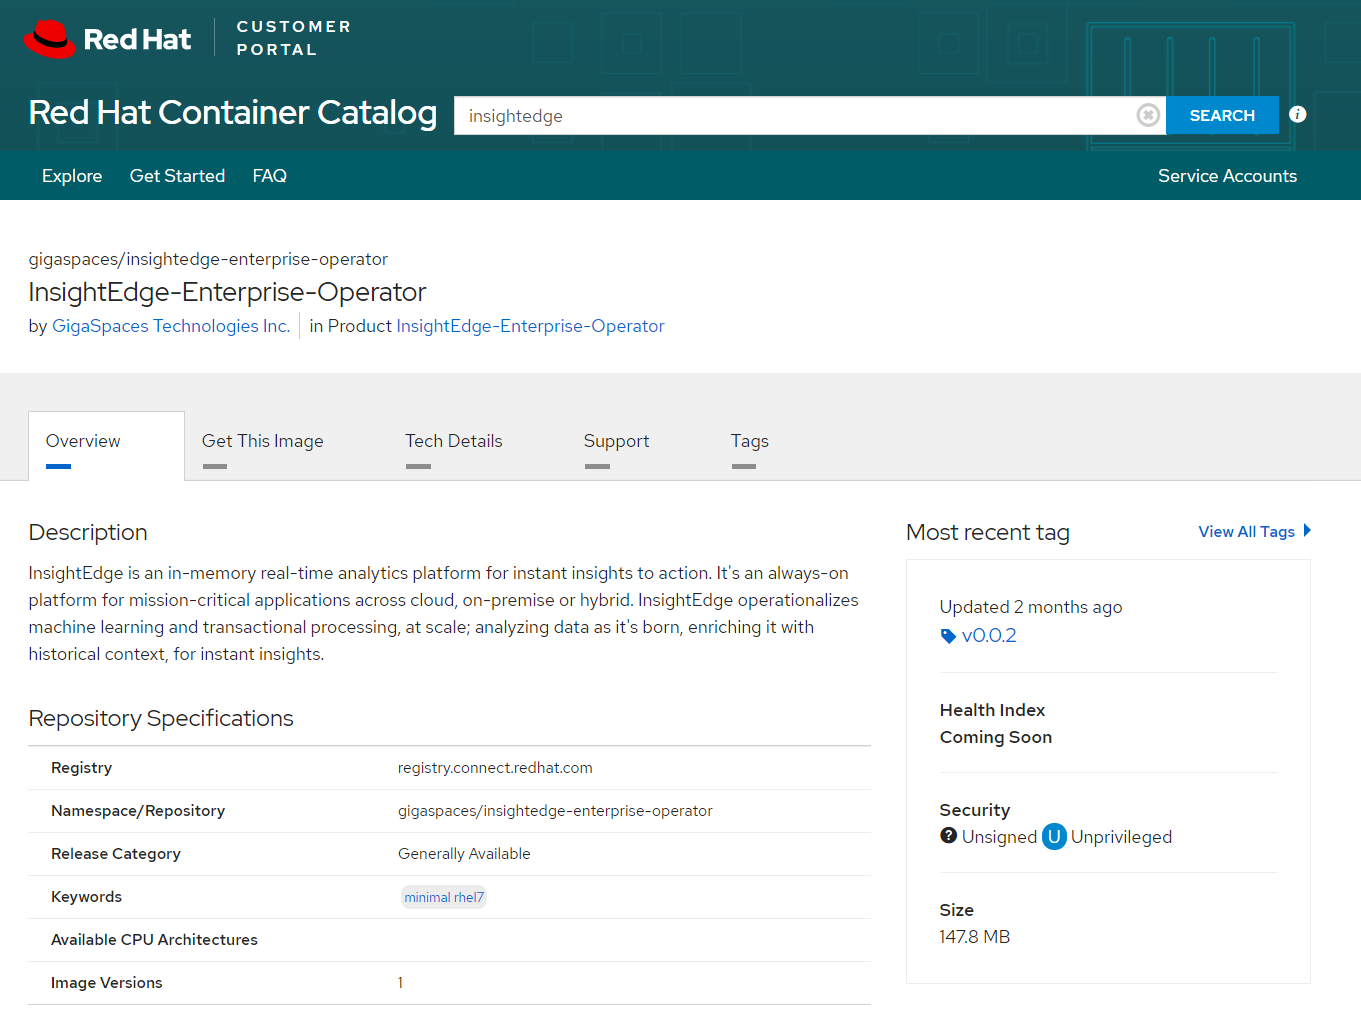 InsightEdge Operator Image in Red Hat Container Catalog